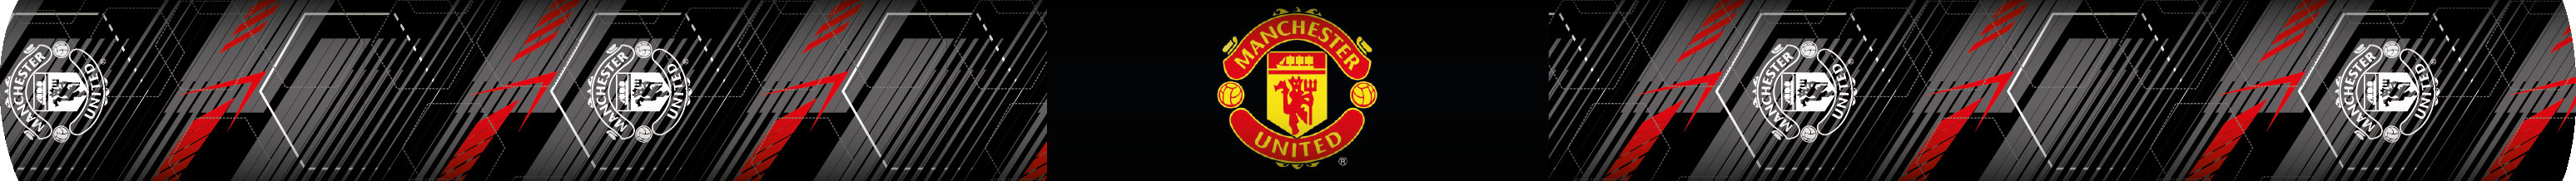 Man United - 1m x 700mm Book Cover Wrap - 1 Sheet